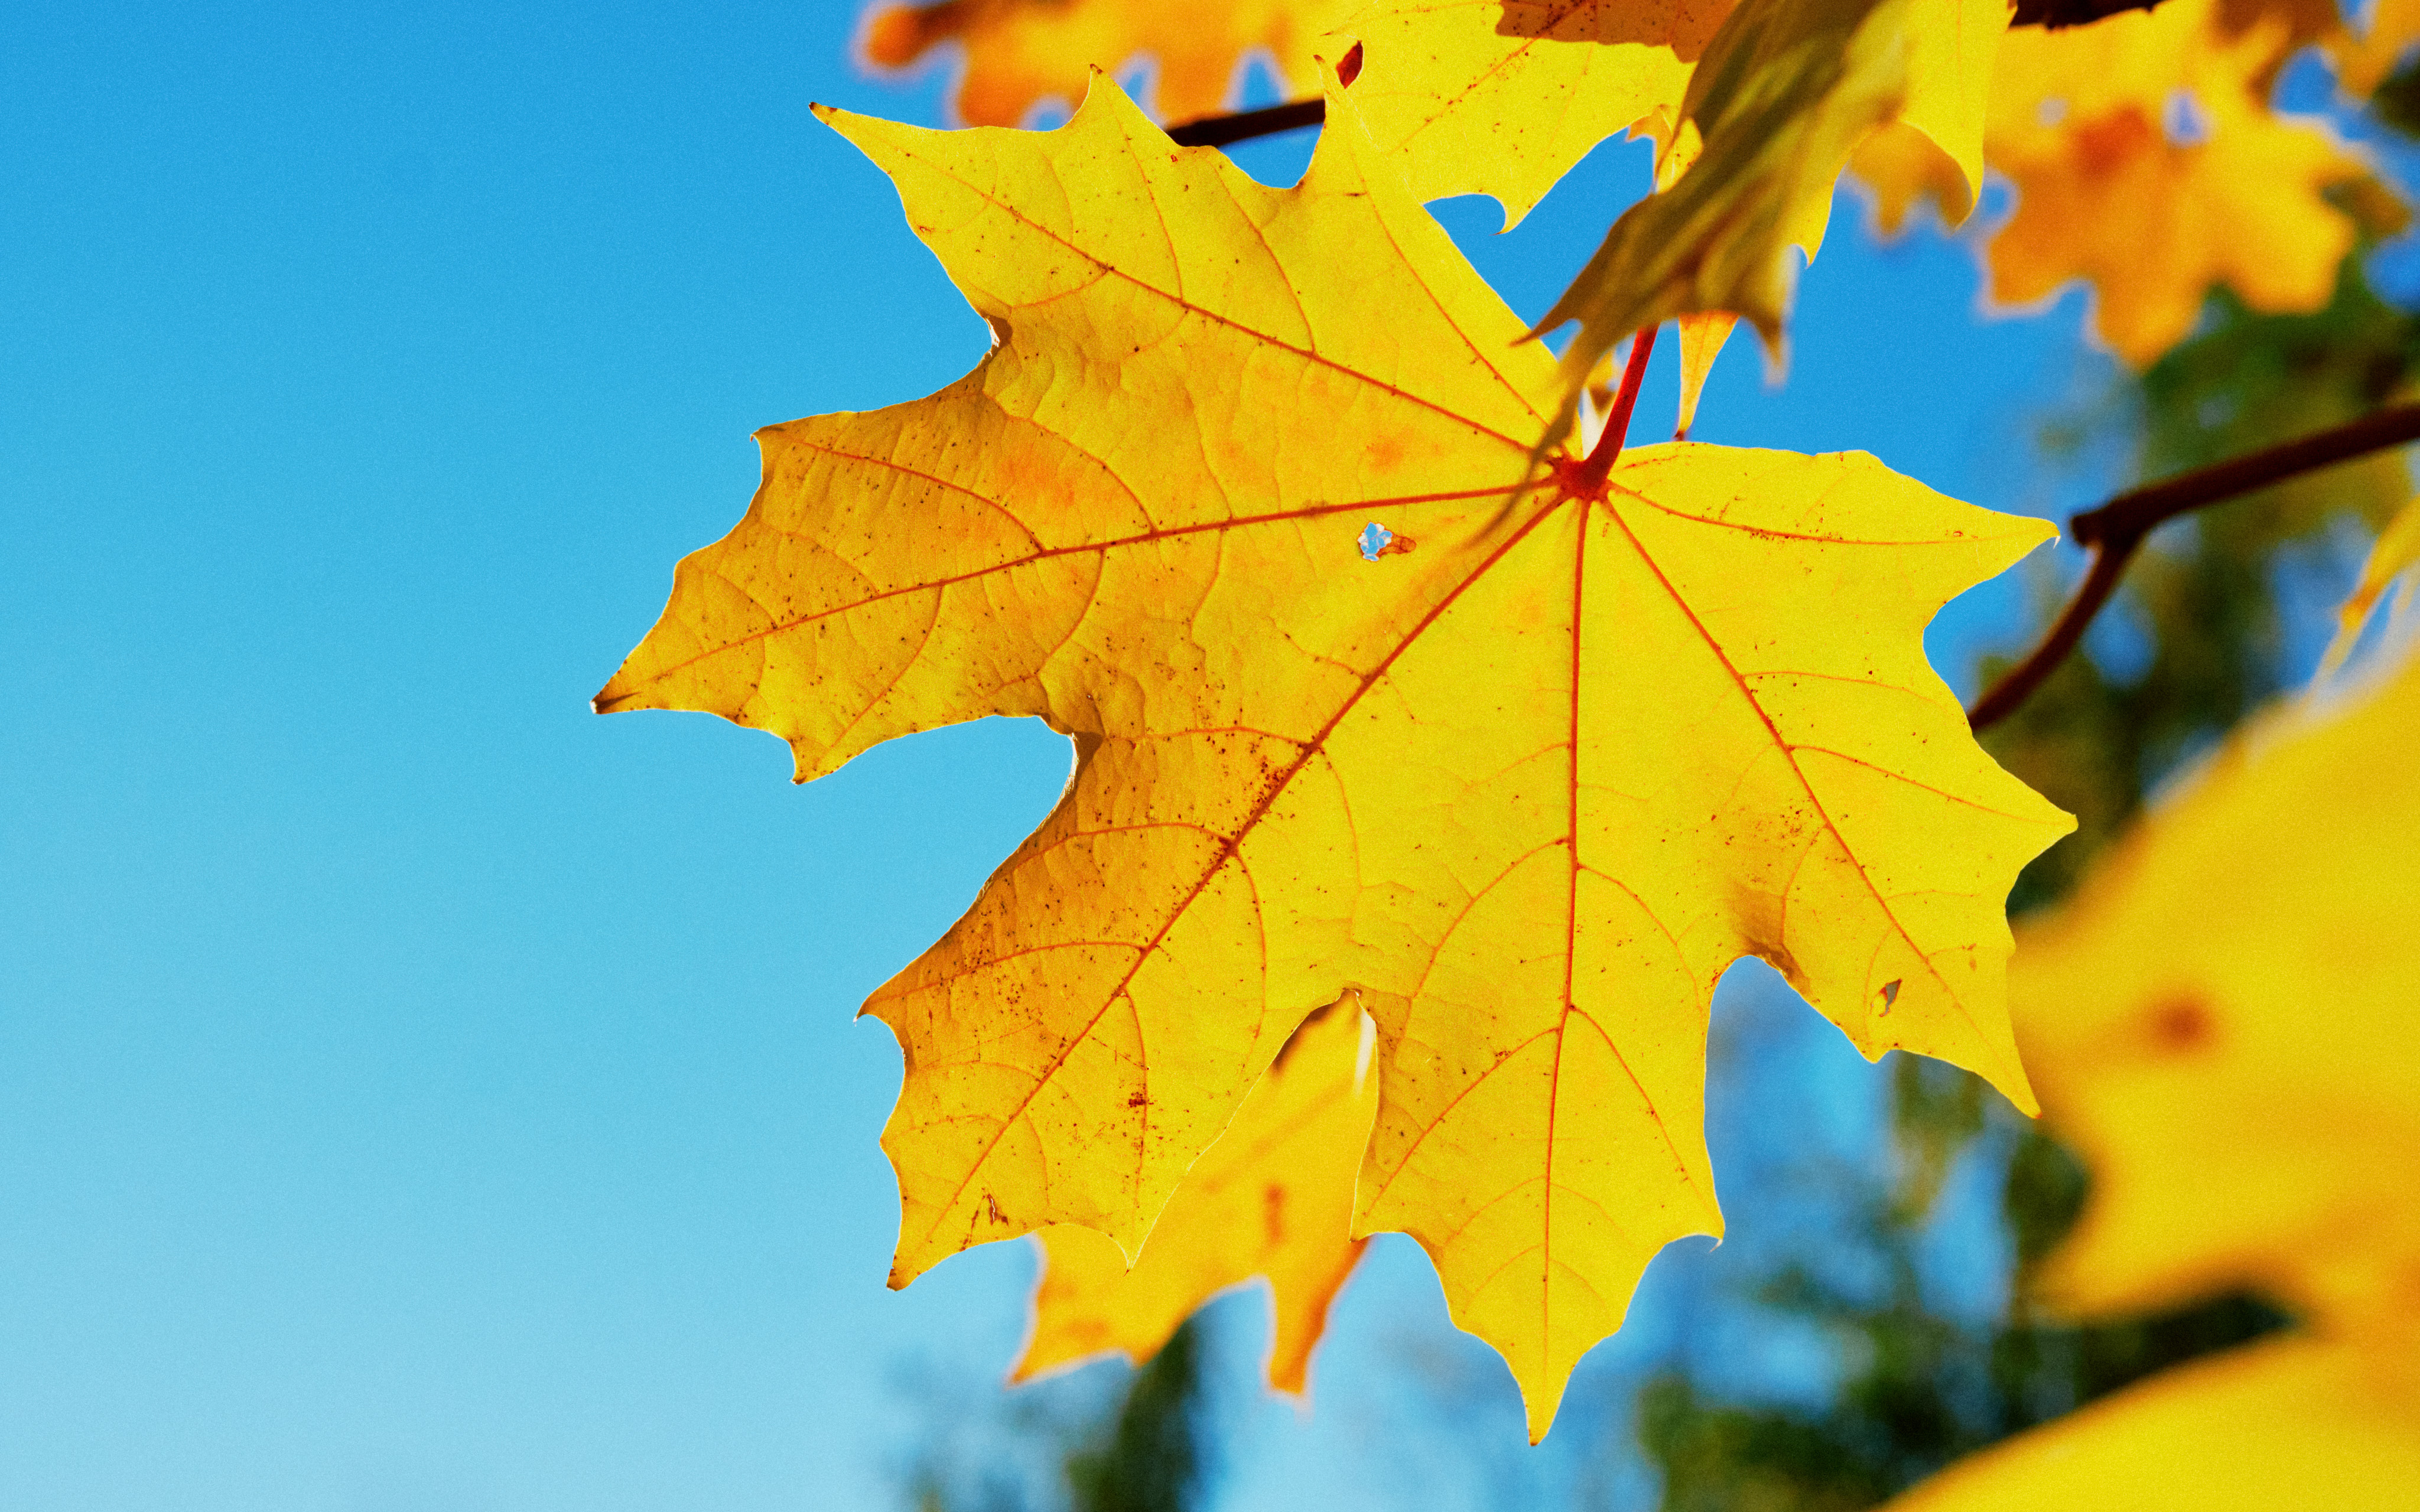 a yellow maple leaf, photo taken from underneath and through the leaf towards light. bright autumn colors